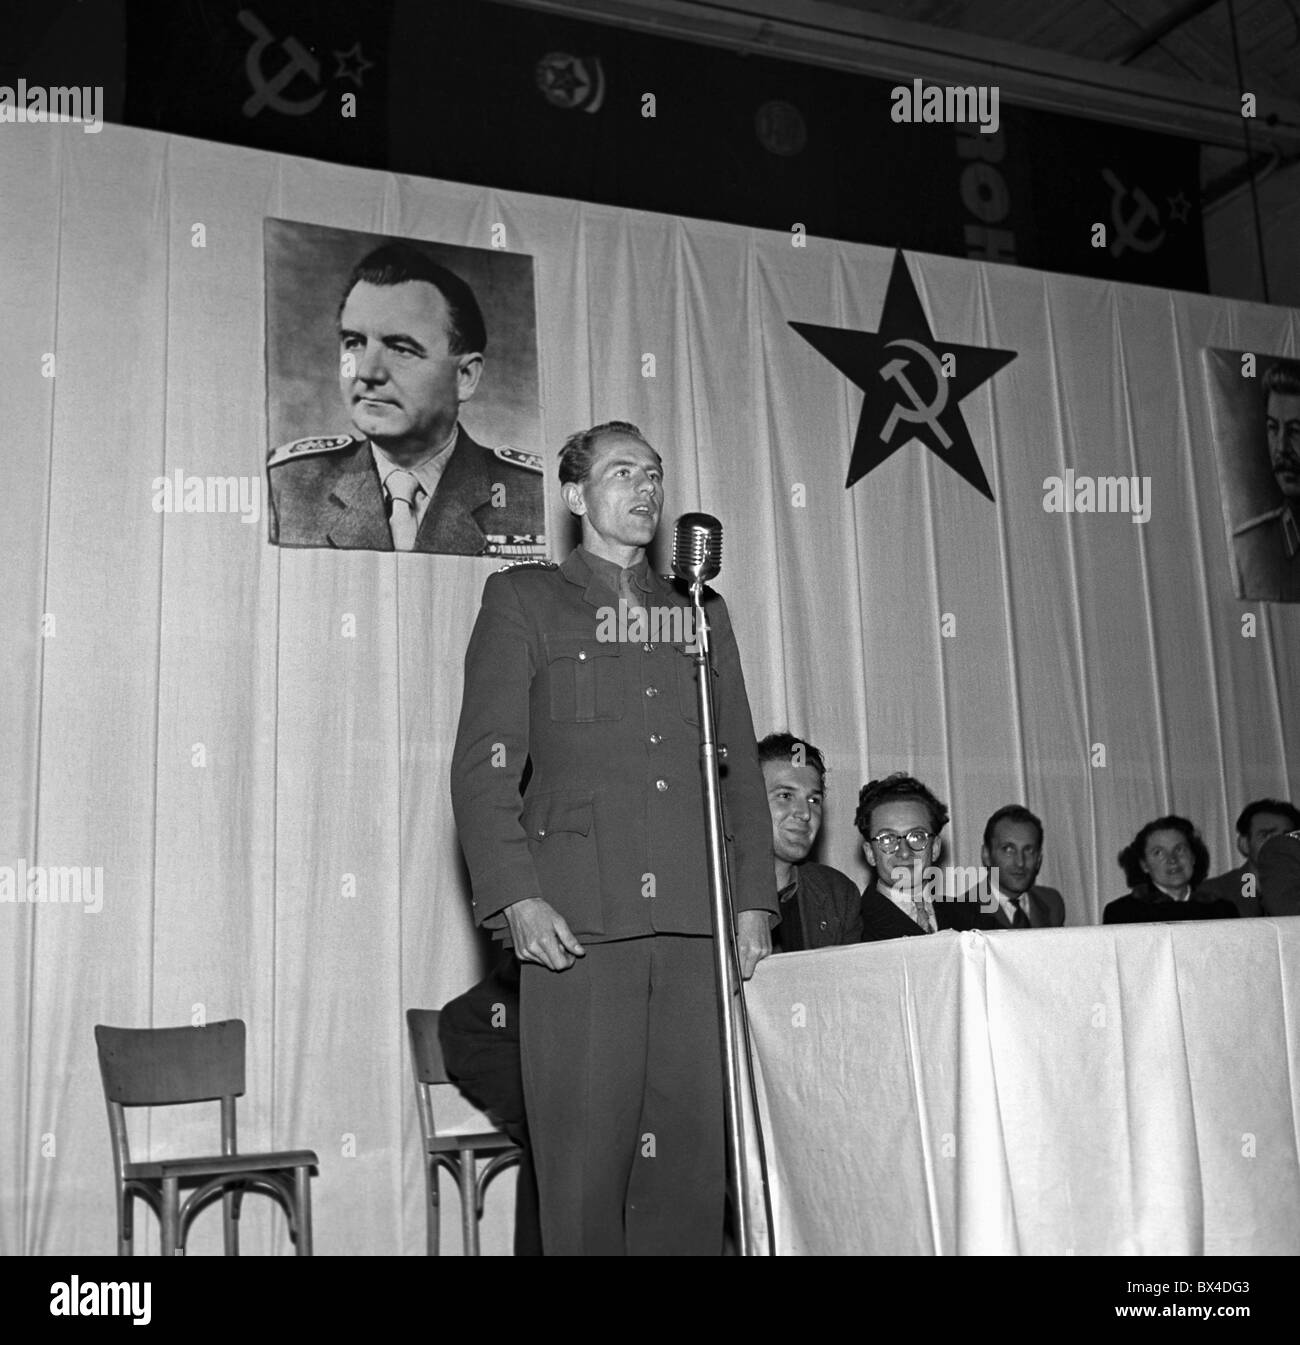 Emil Zatopek Olympic gold medalist is shown here with portrait of Communist leader Klement Gottwald as a faithful - Stock Image